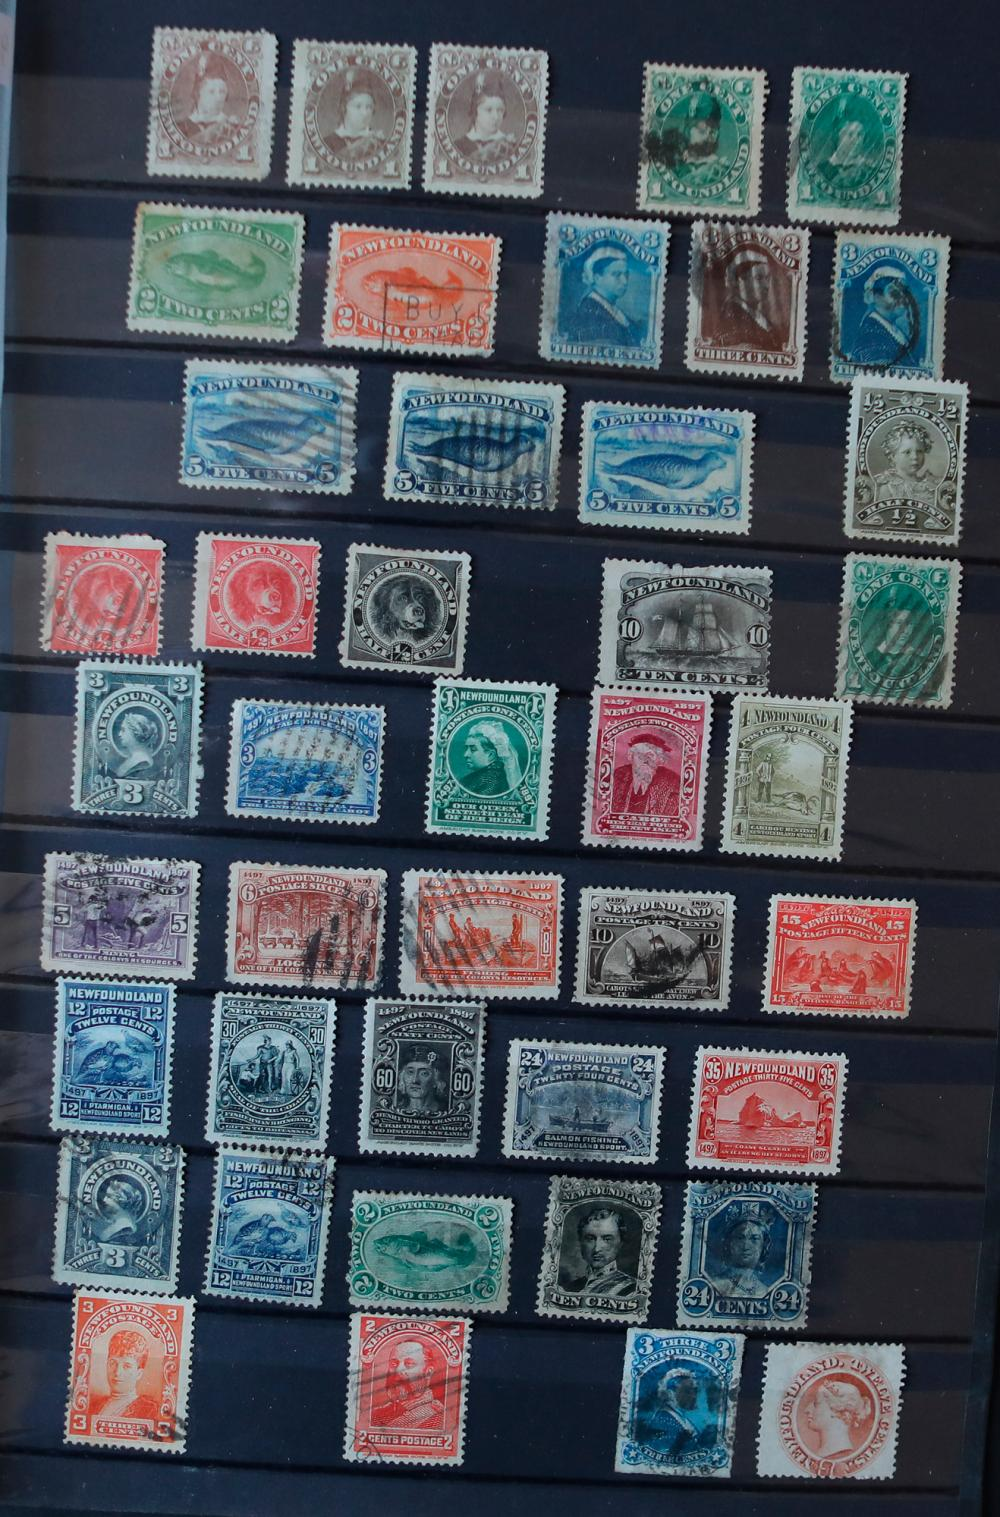 Canada Newfoundland Large Stamp Collection